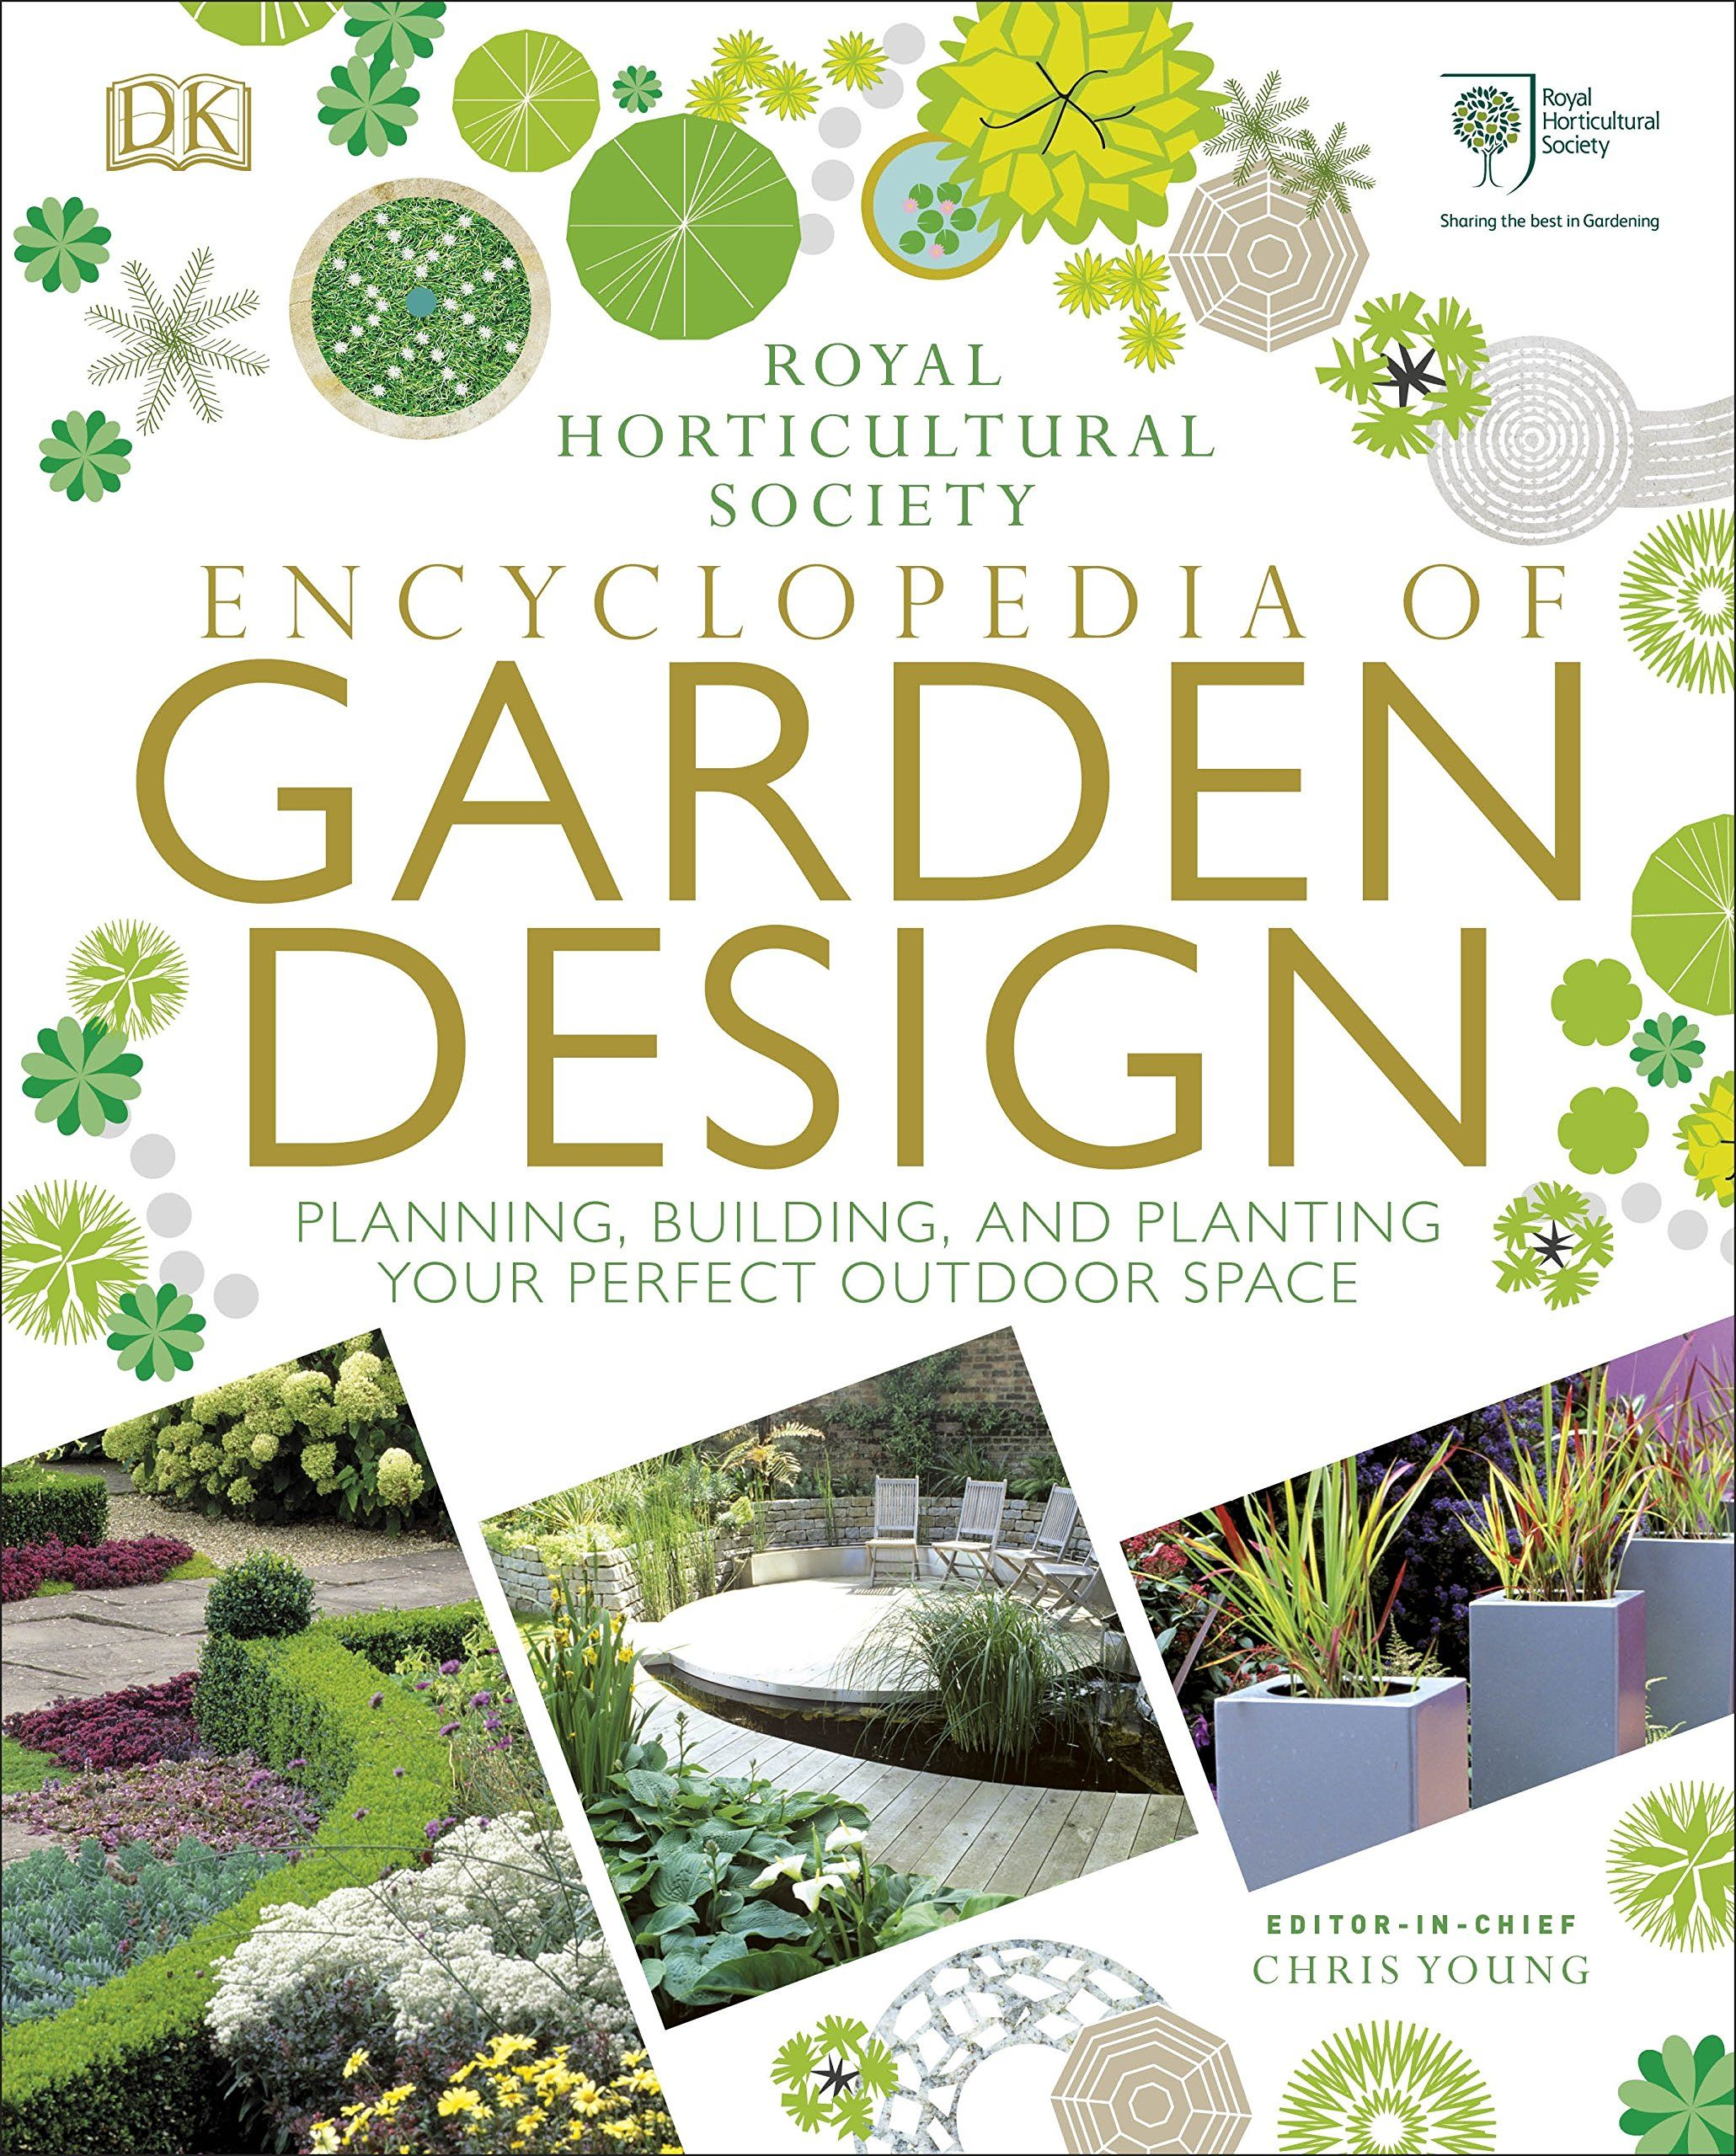 Rhs Encyclopedia Of Garden Design Planning Building And Planting Your Perfect Outdoor Space Design Planning Garden Rhs Ad Progettazione Di Giardini